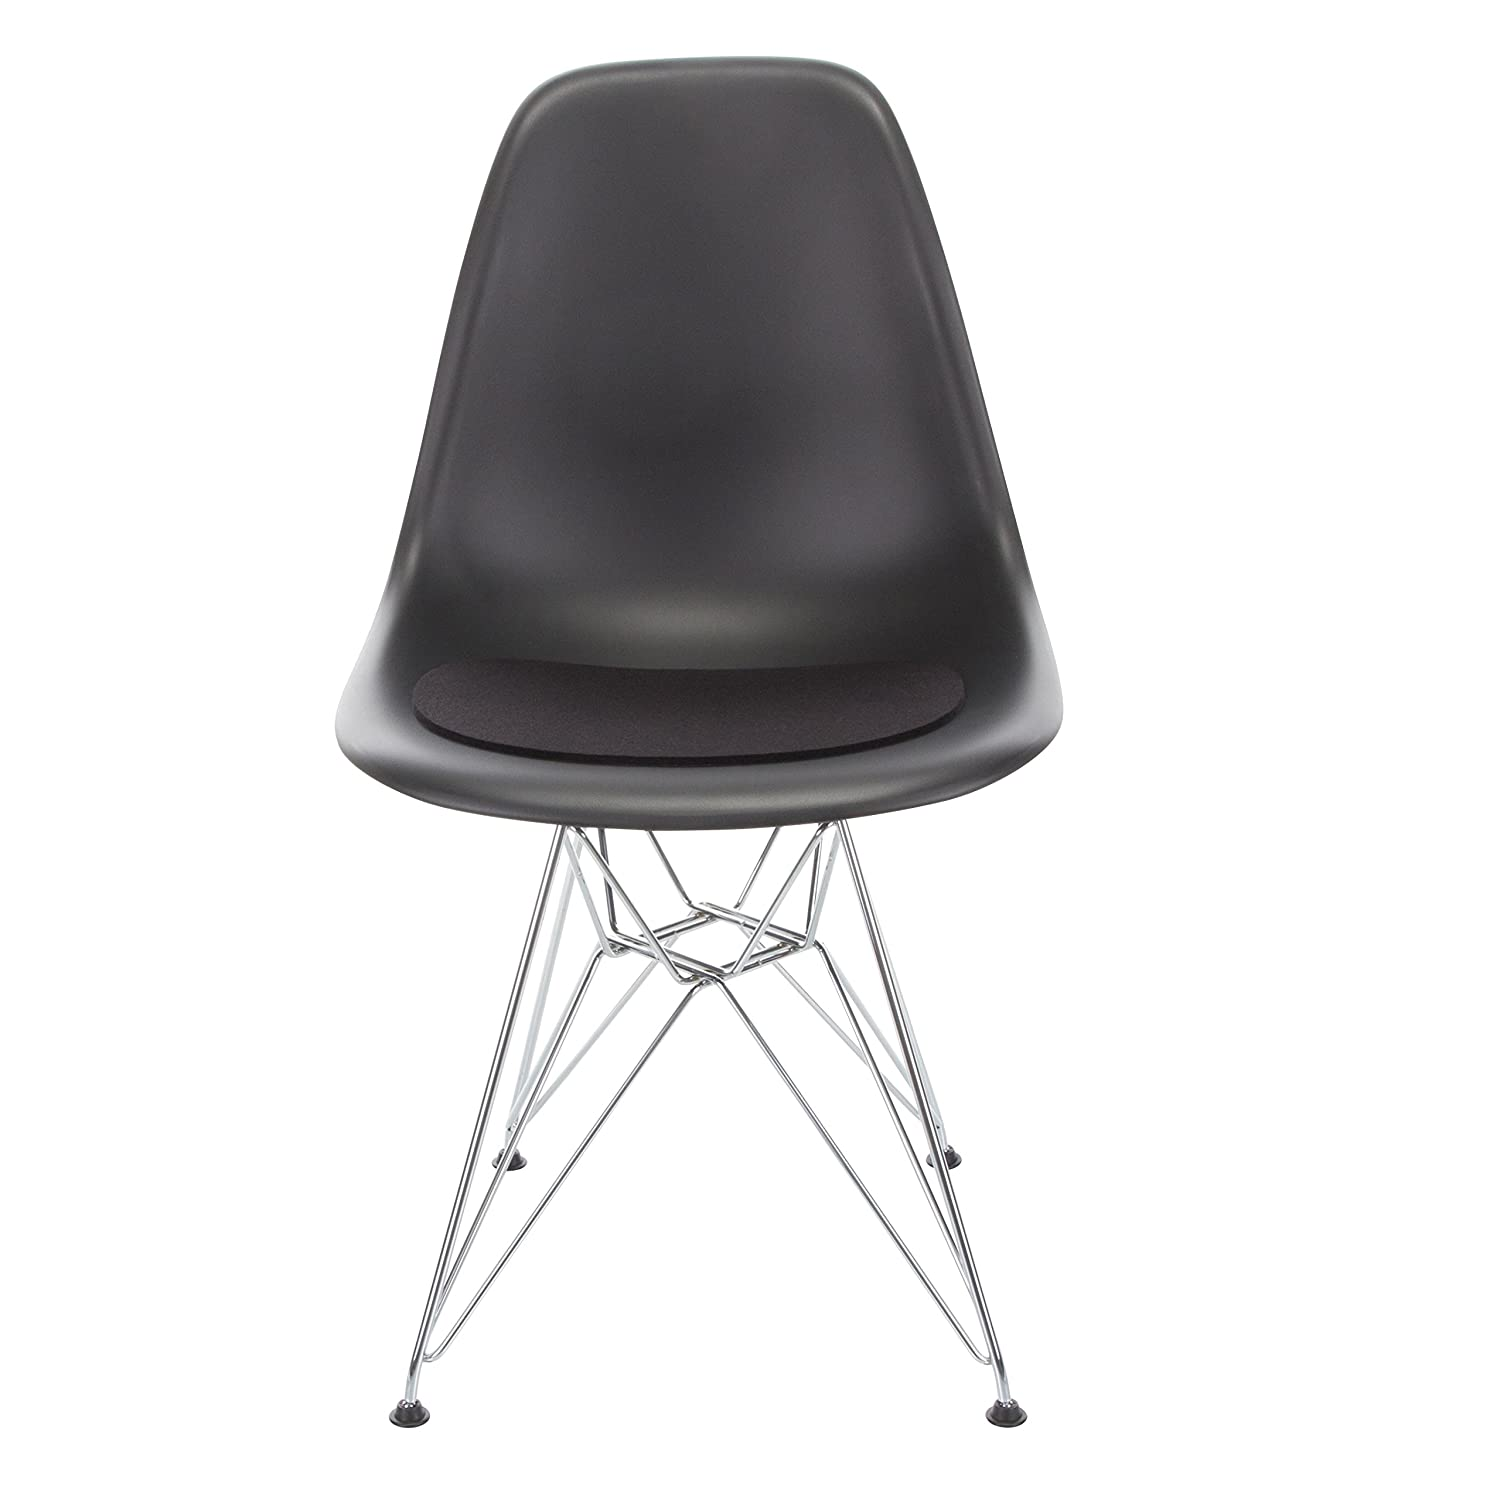 Hey Sign 5011235_02AR Felt Cover for Eames Plastic Side Chair, Anti-Slip, Black